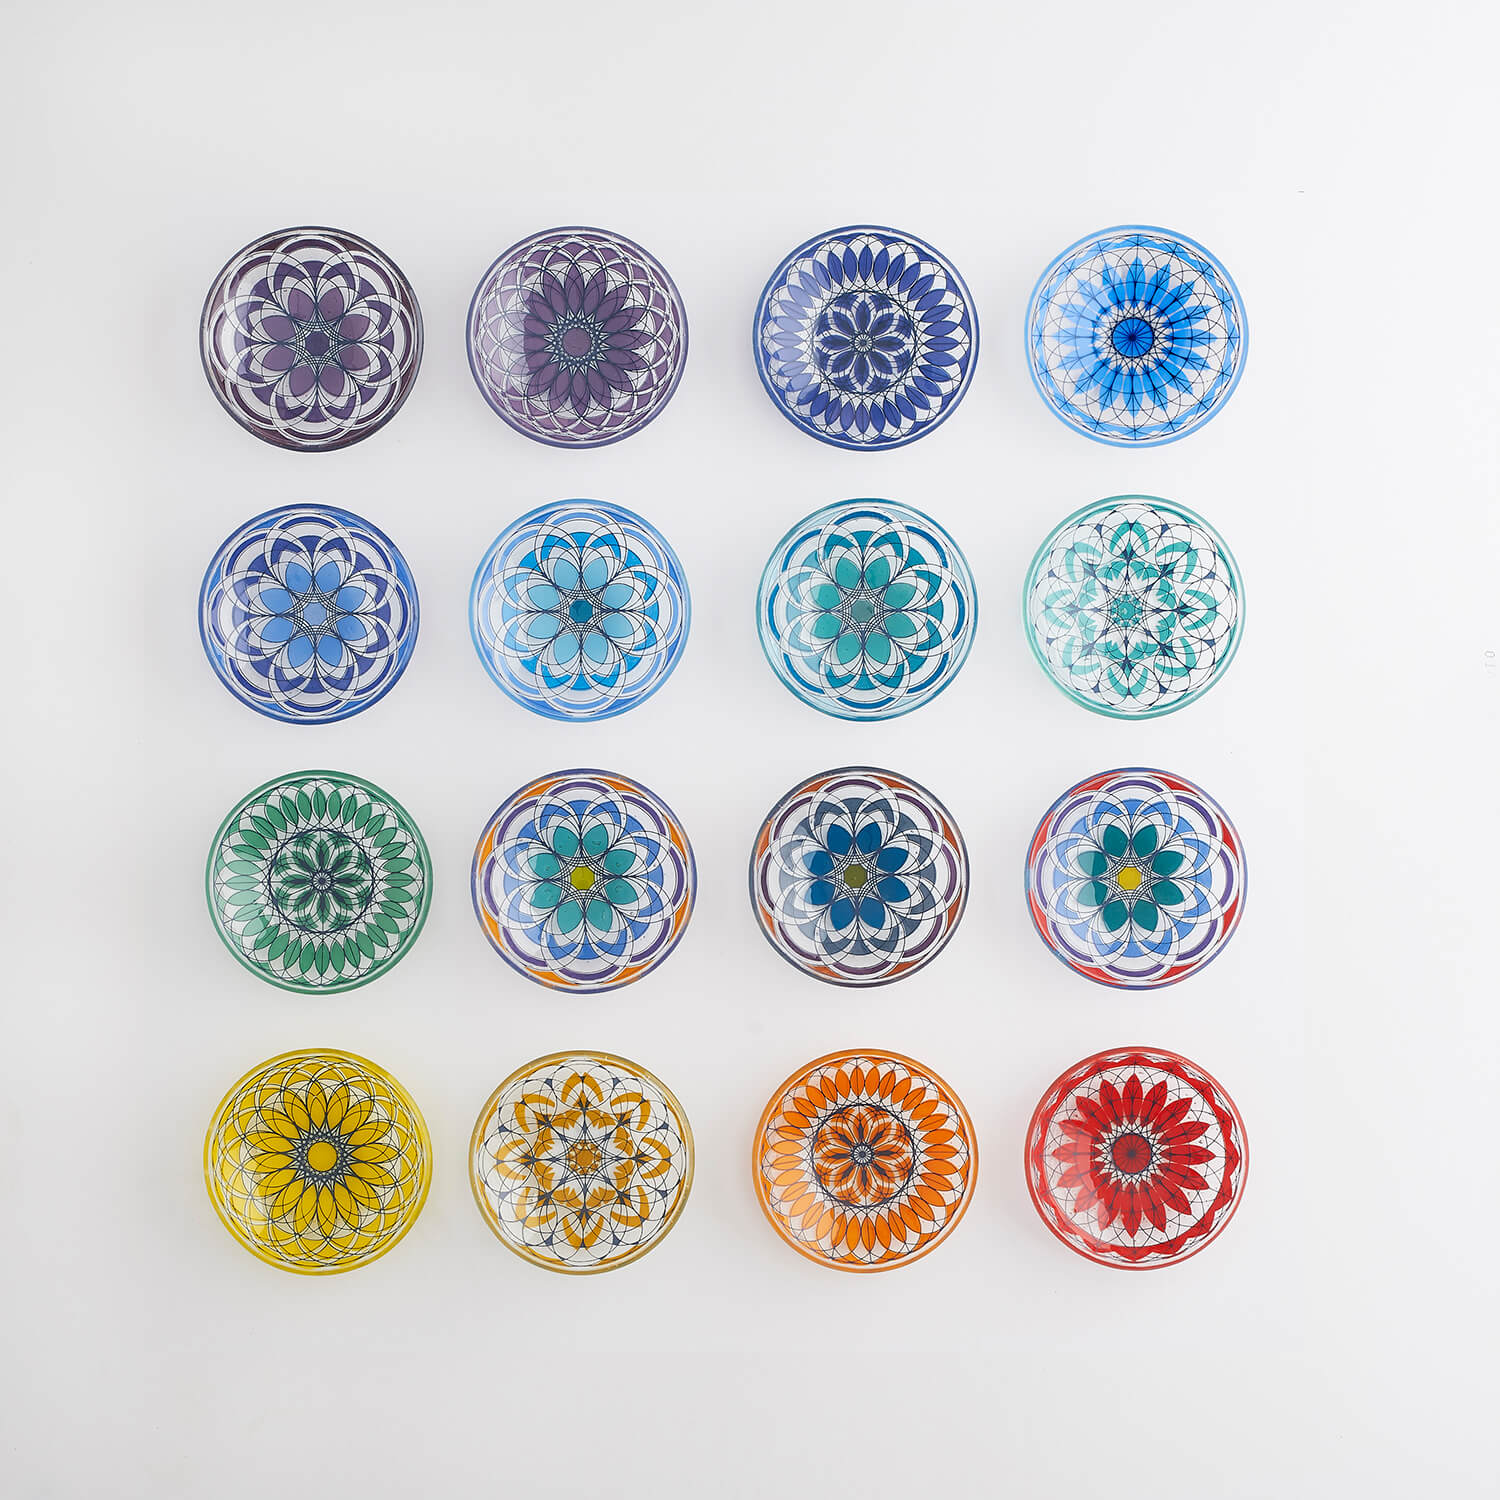 Geometric patterned glass bowls photographed in a symmetrical way